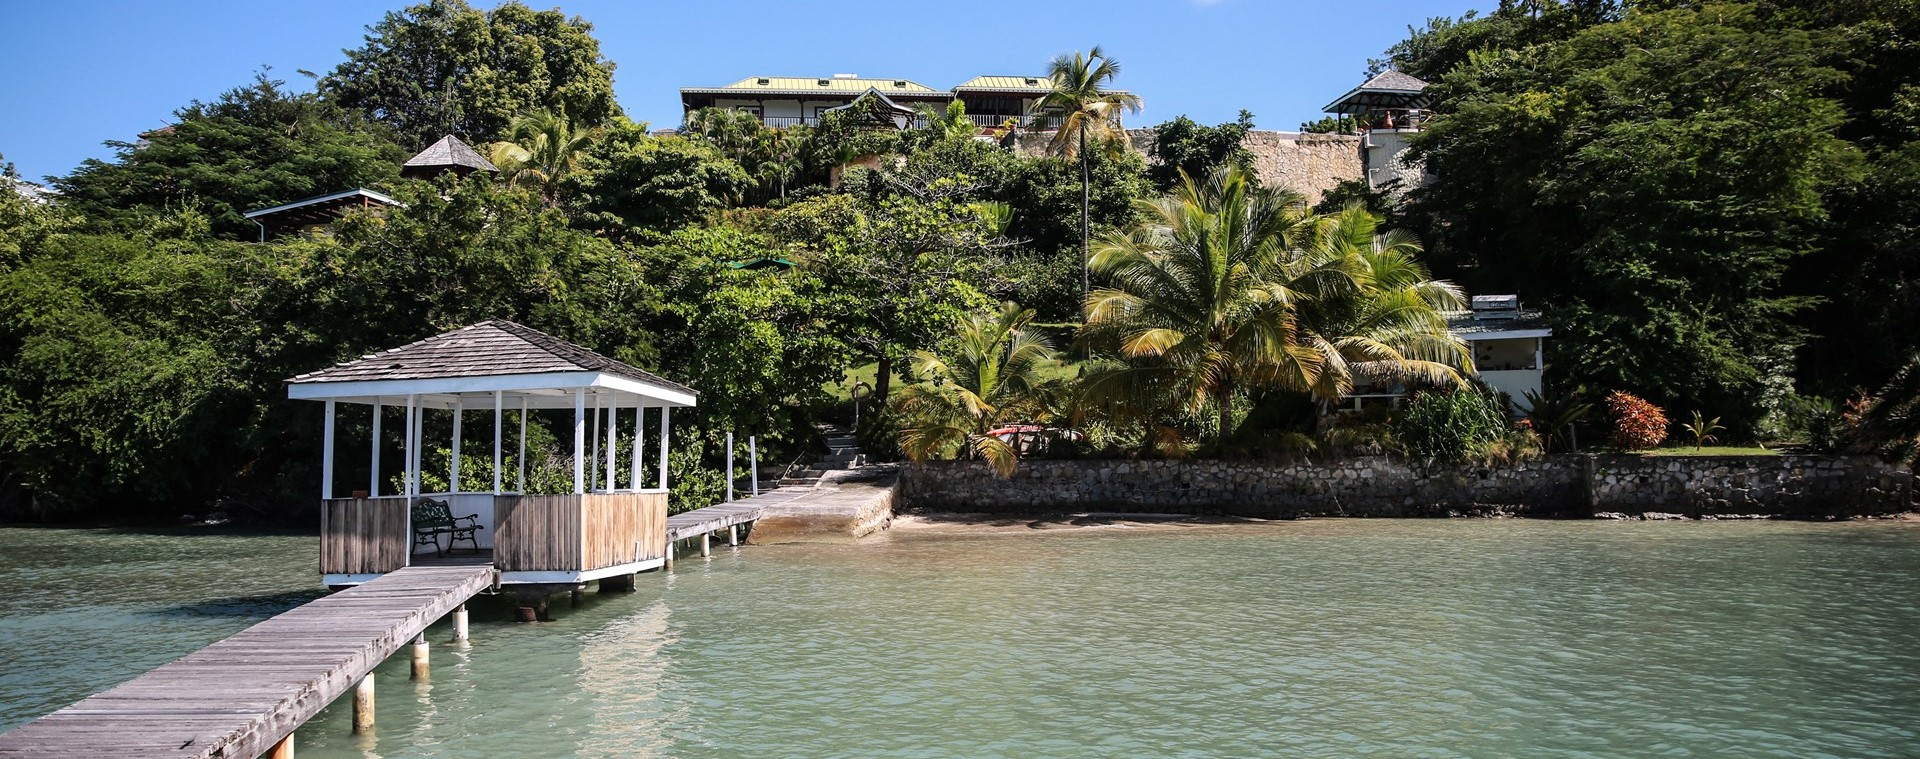 estate-house-grenada-private-jetty